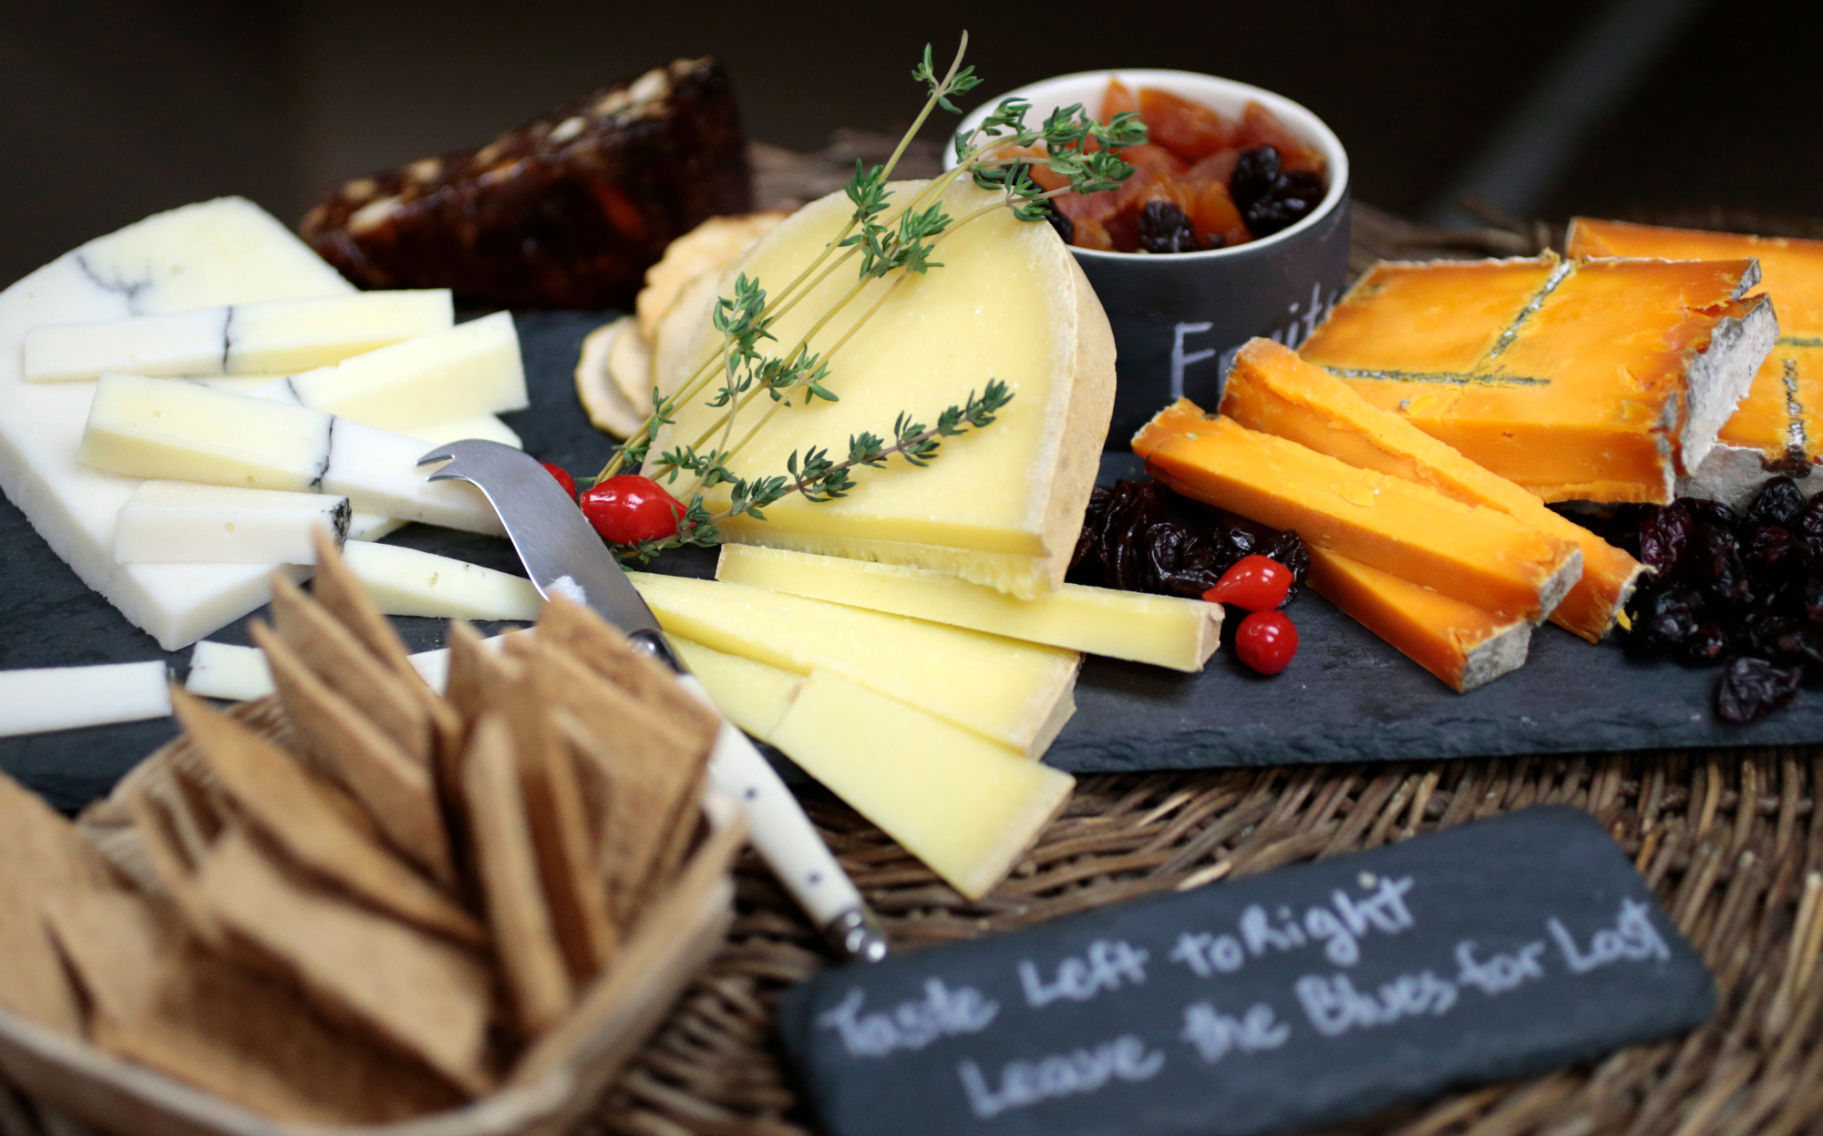 Wisconsin cheese plate & Cheese plates add pizzazz to holiday tables | Madison.com Recipes ...